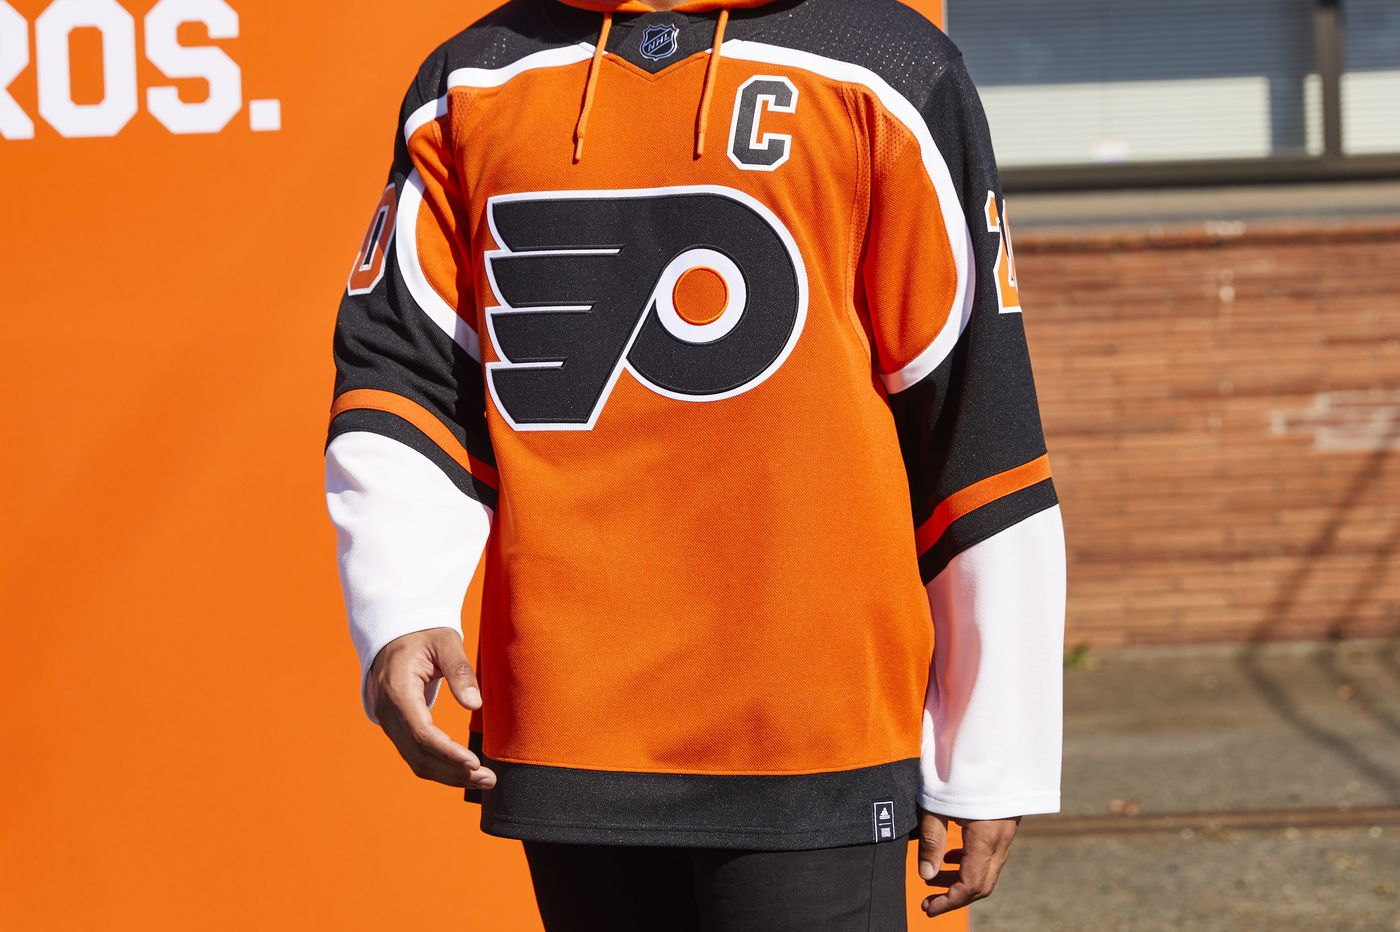 Flyers unveil new reverse retro jersey to be worn in select games during 2020-21 season